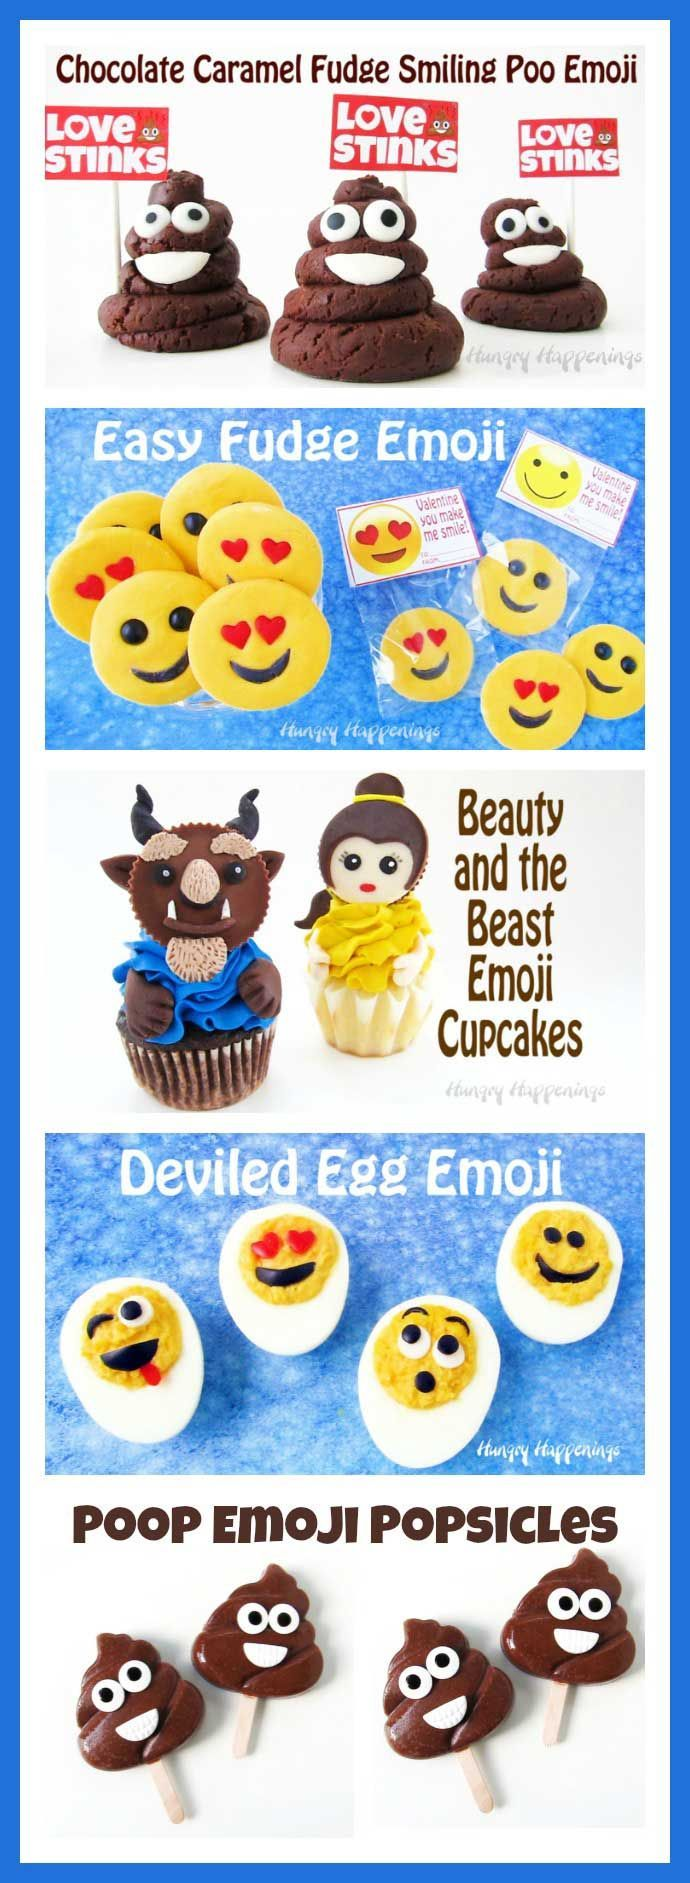 Cute Emoji Themed Treats - Chocolate Smiling Poo Emoji, Smiley Face Emoji Fudge, Beauty and the Beast Emoji Cupcakes, Deviled Egg Emoji, Poop Emoji Popsicles. Recipes at HungryHappenings.com.